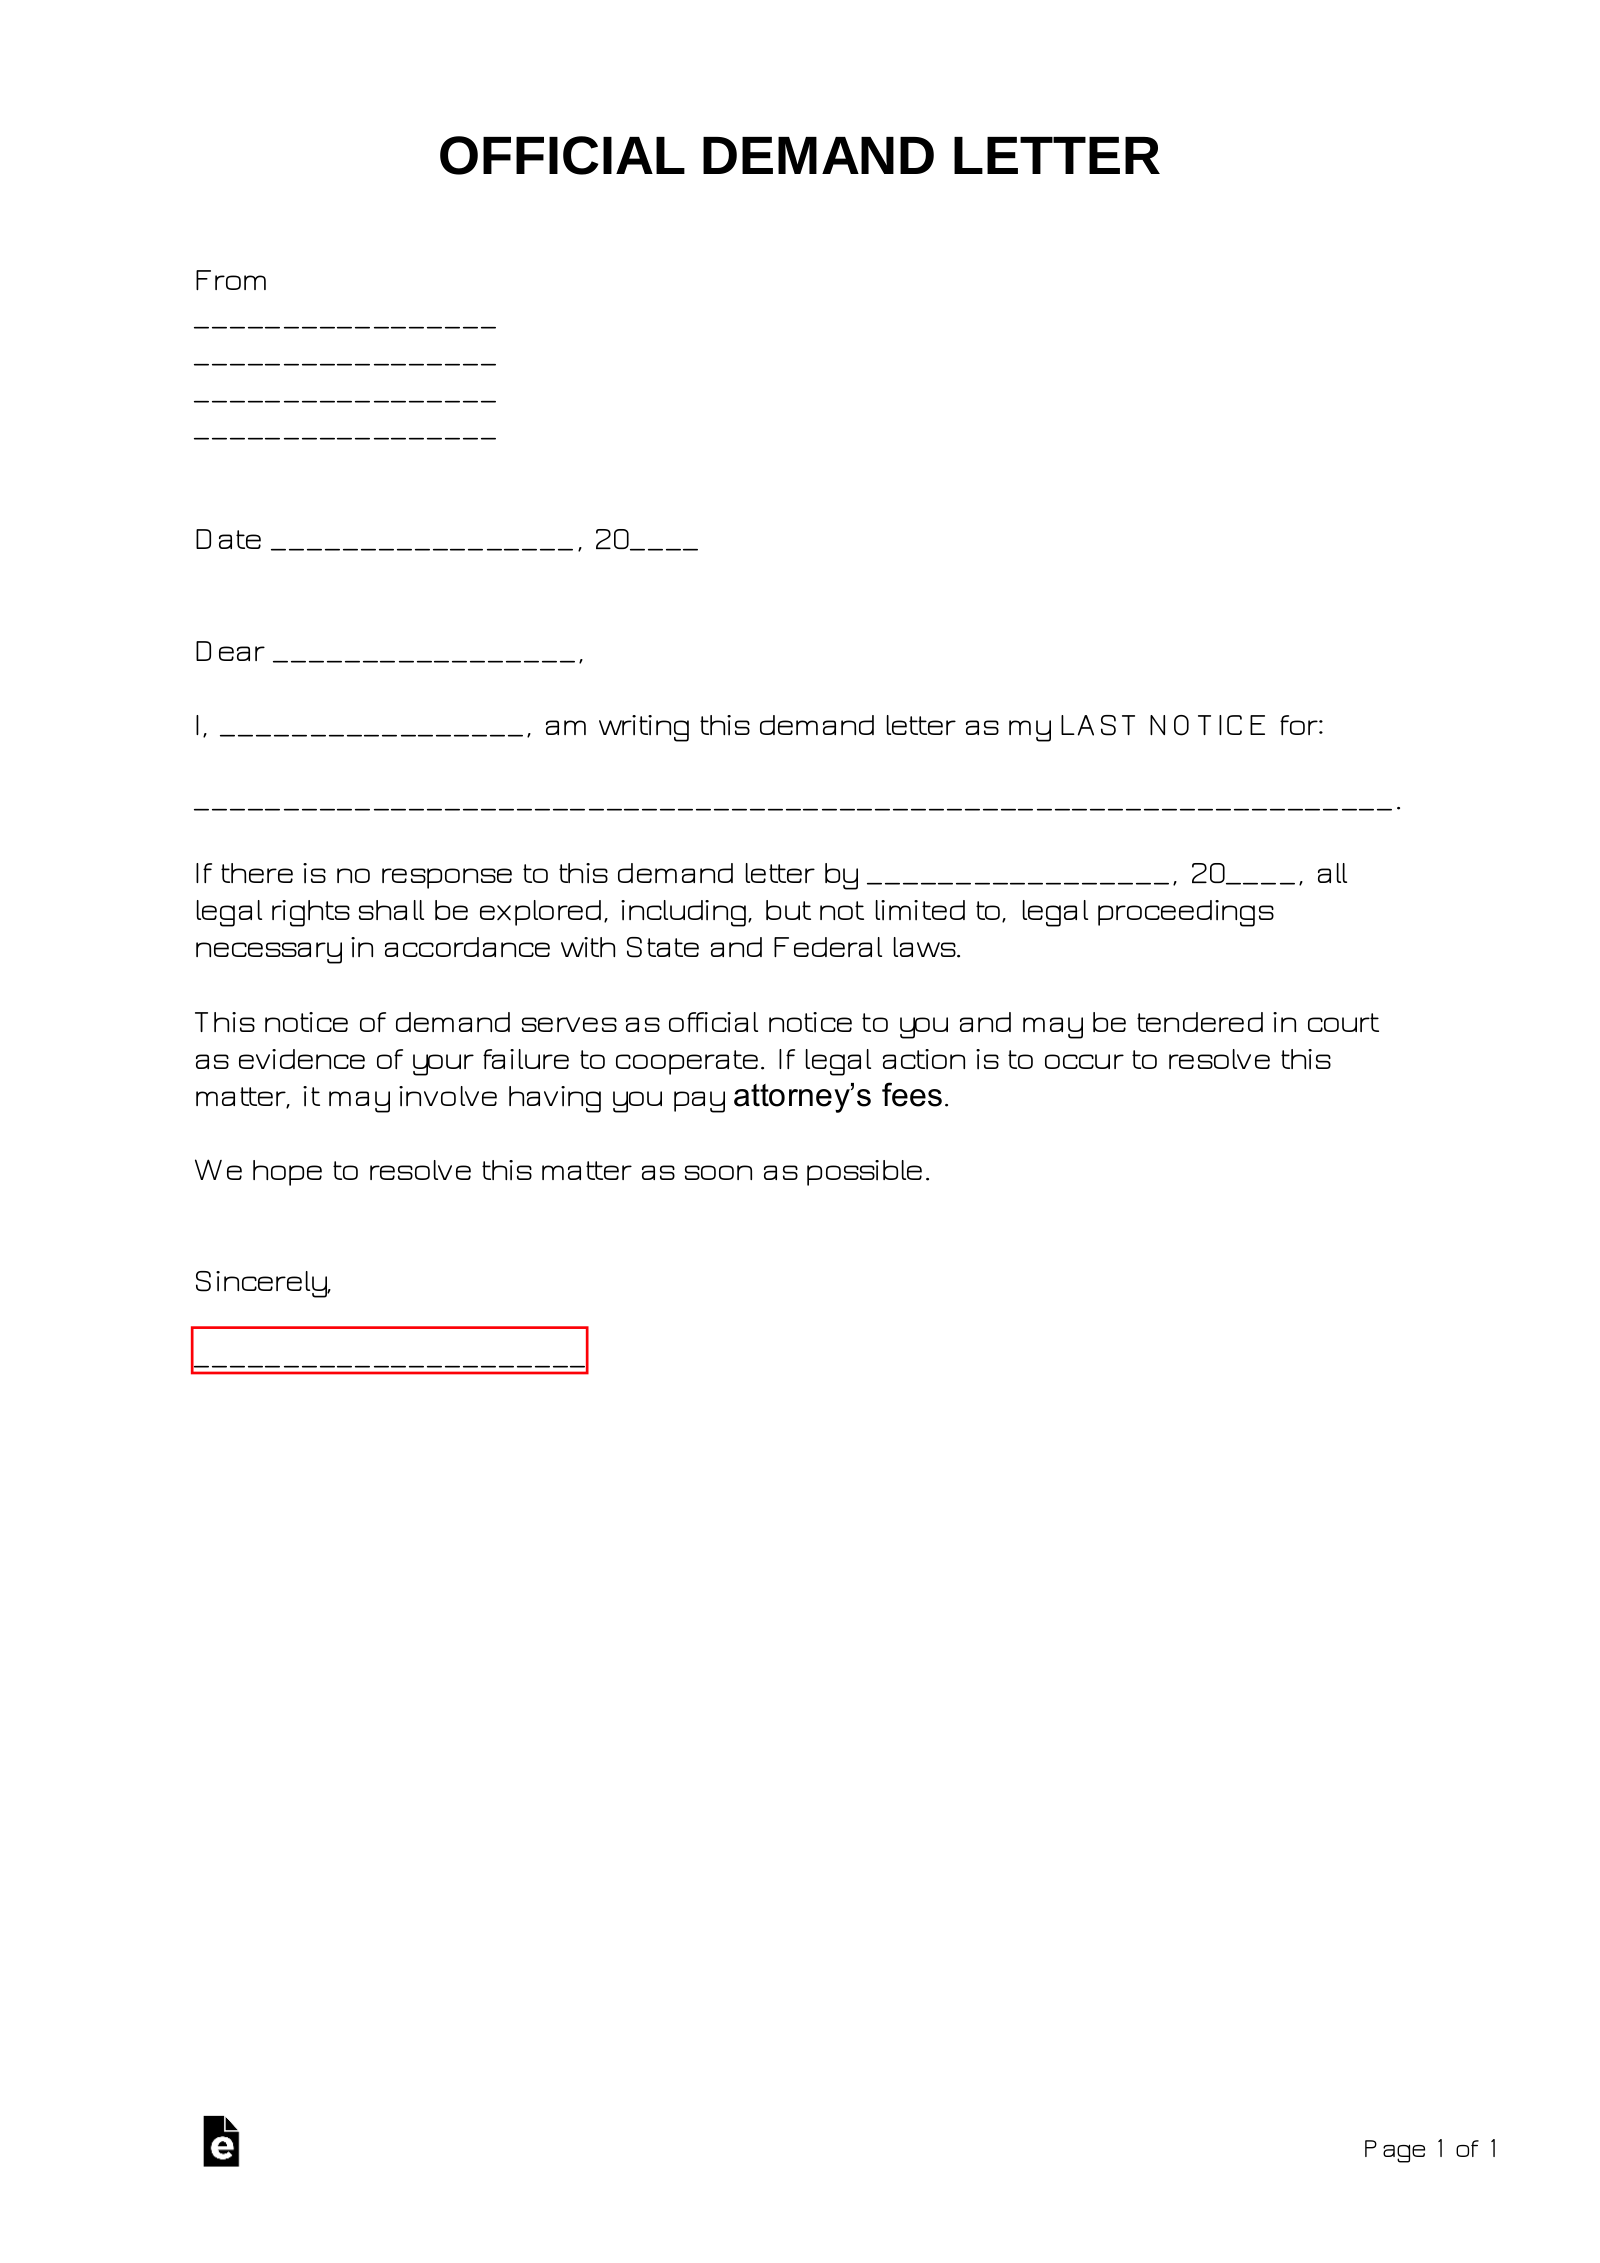 Offical-Demand-Letter  Day Demand Letter Template To Return Auto Mobile on